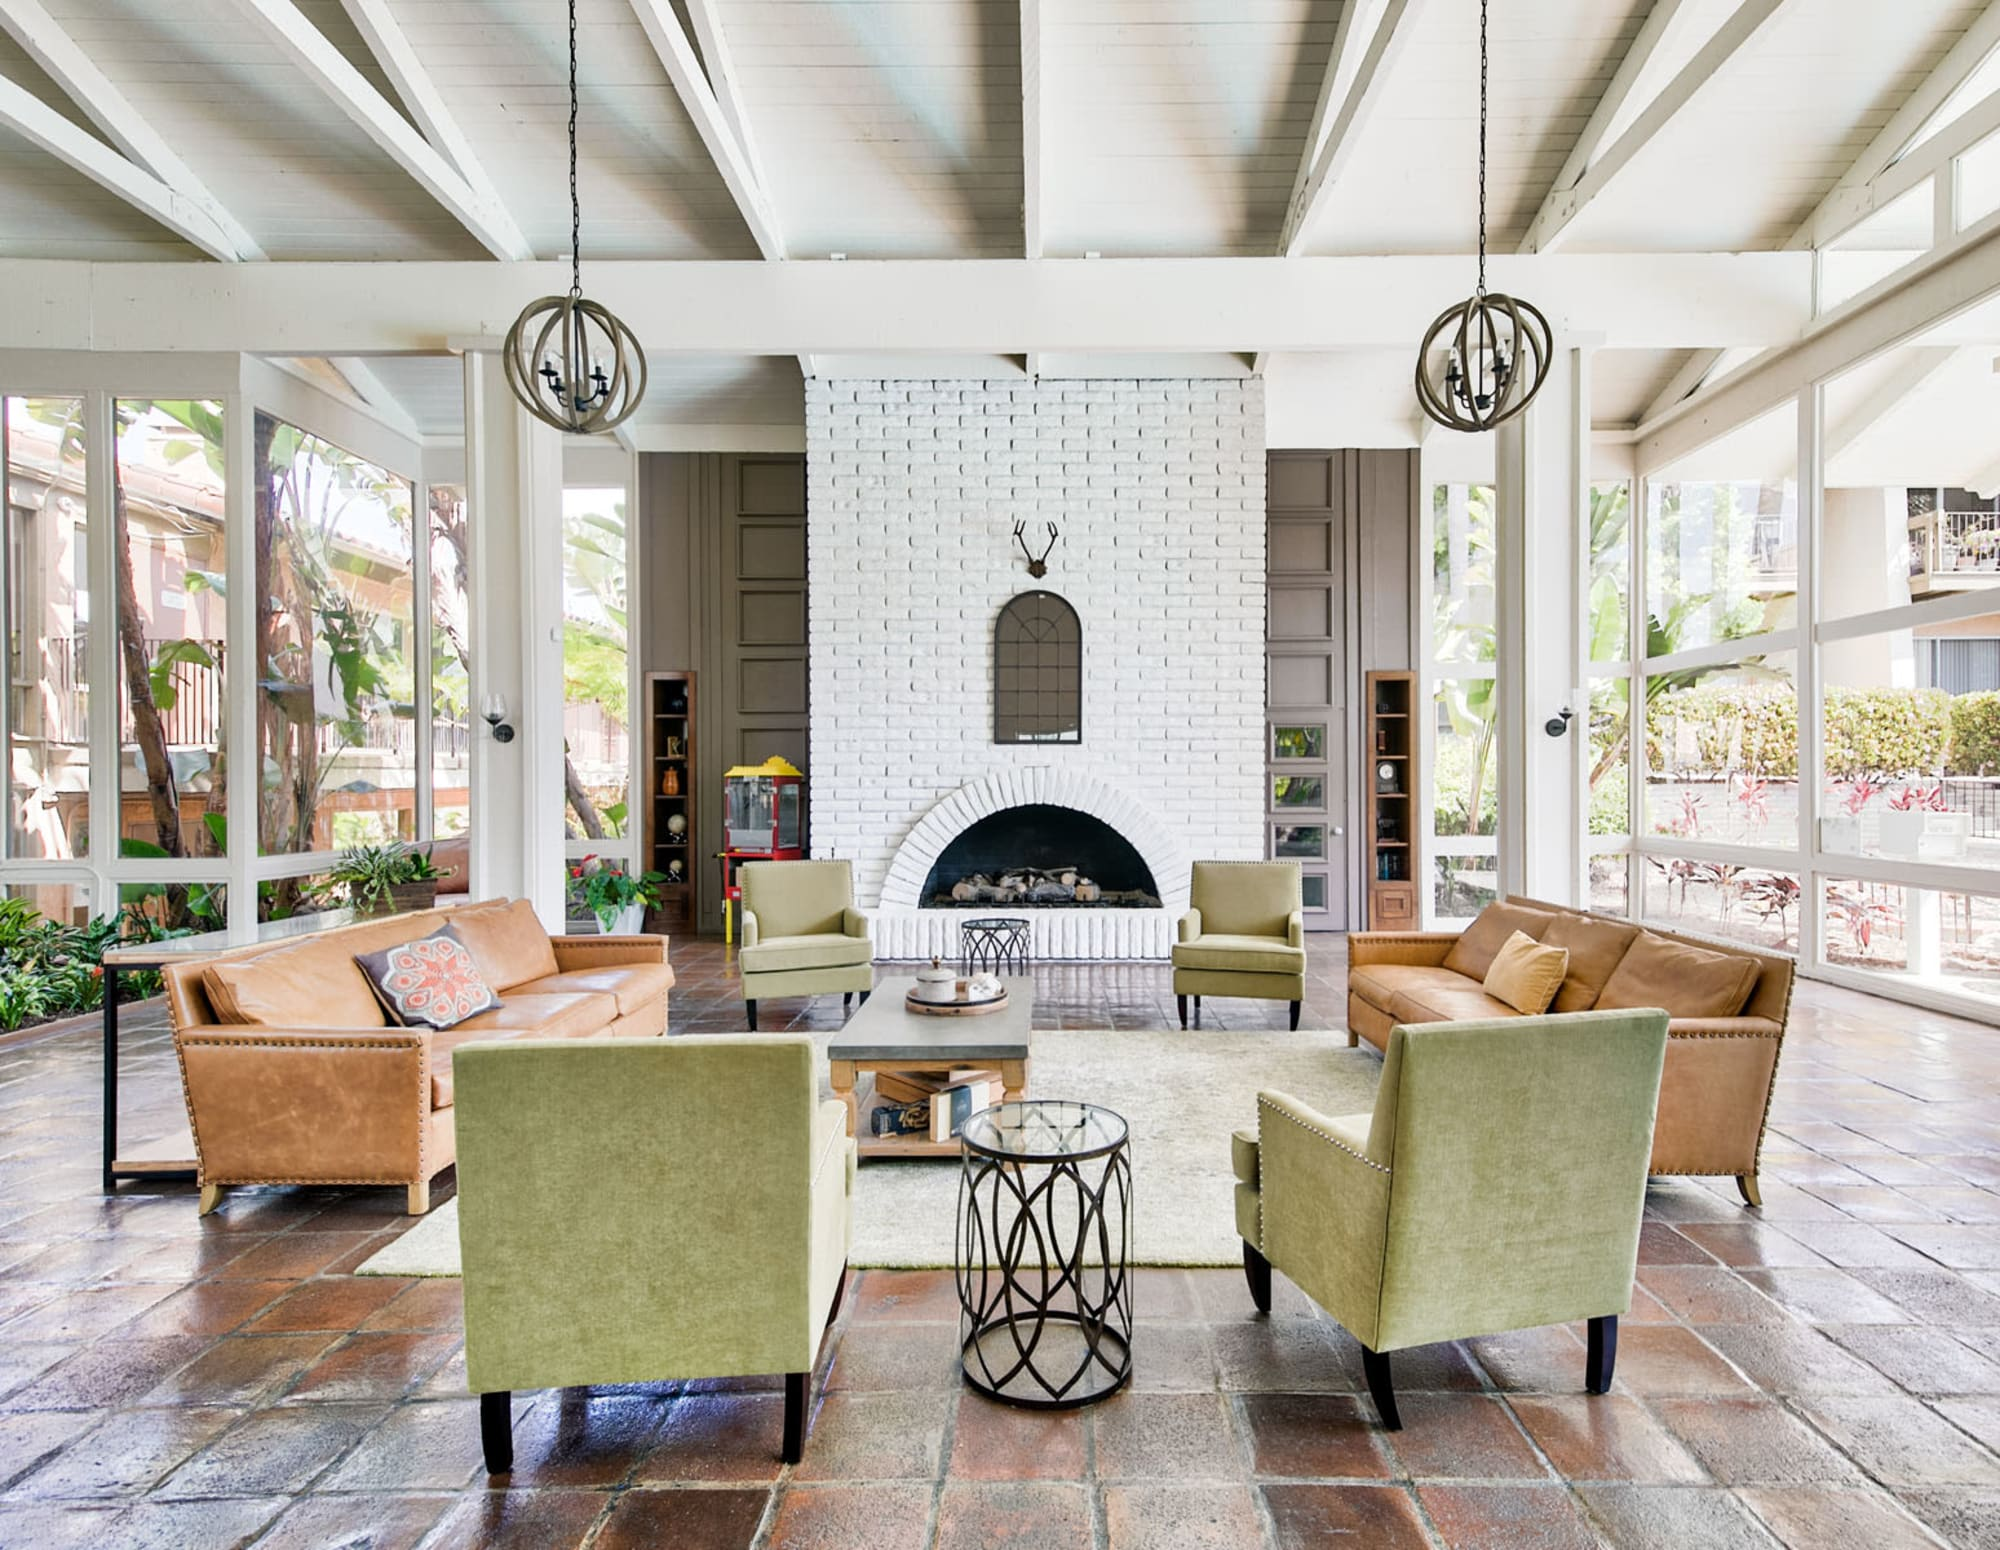 Mission-style architecture and lounge seating near the fireplace in the lobby at Mediterranean Village Apartments in Costa Mesa, California